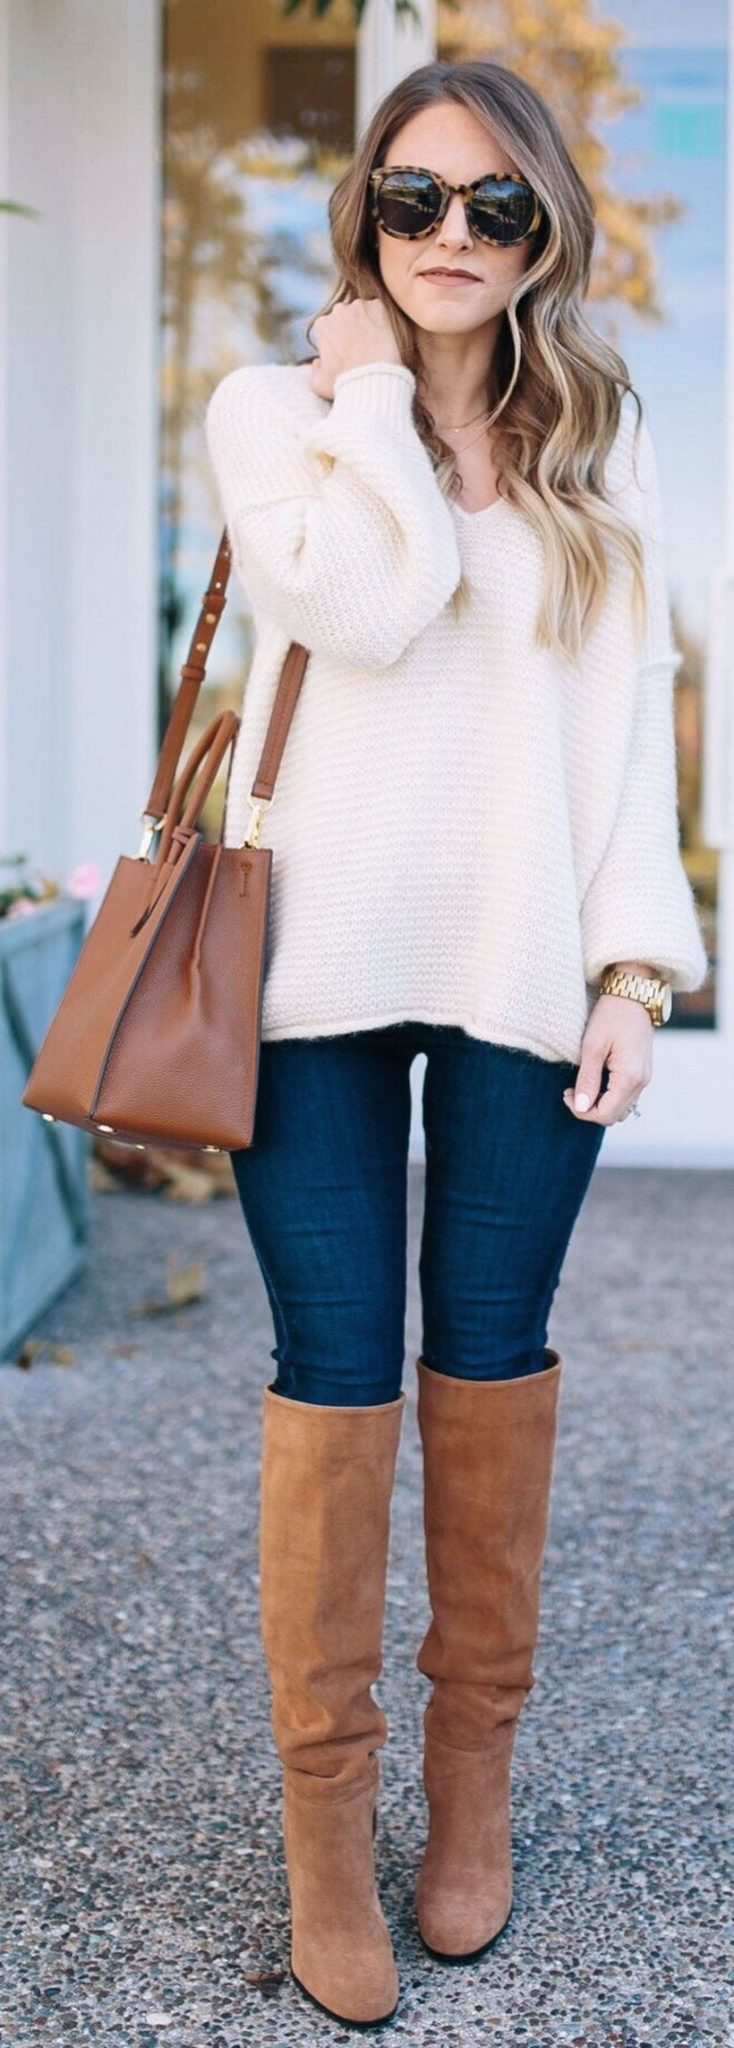 Stylish leather tote bags for work 13